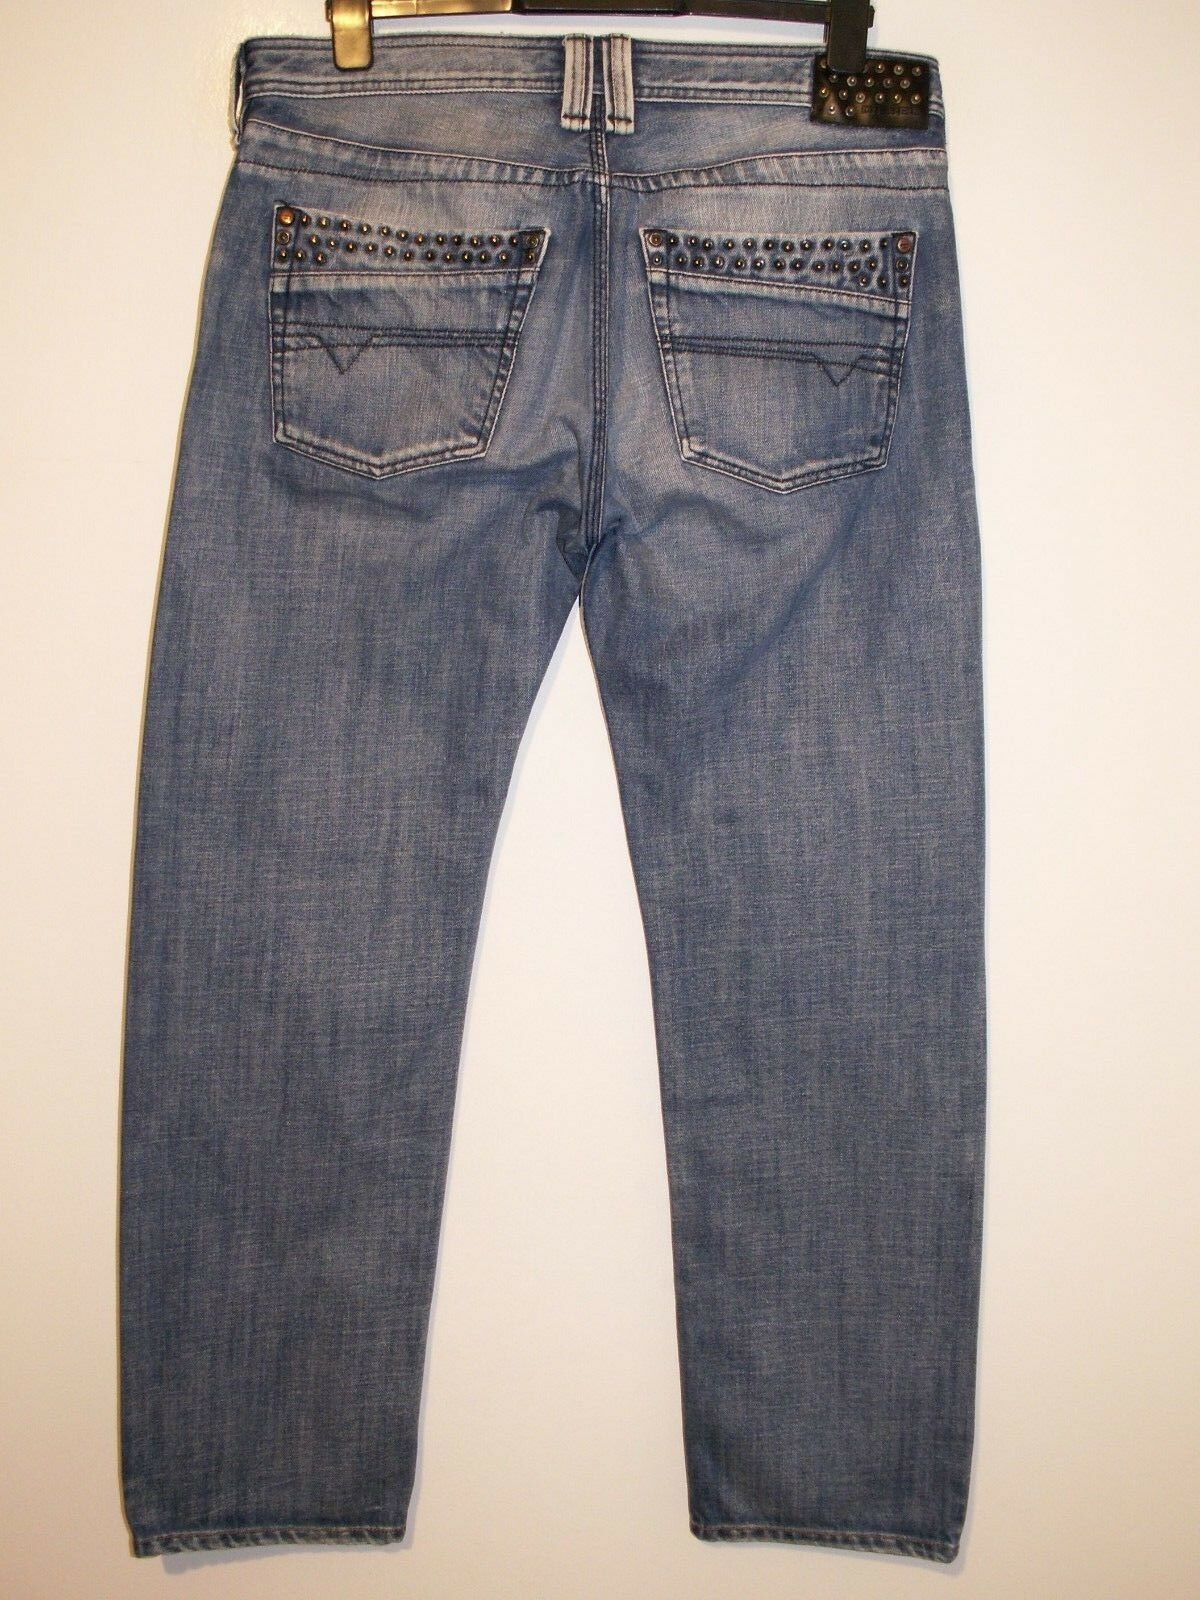 DIESEL TIMMEN REGULAR-STRAIGHT FIT JEANS 008AT 008AT 008AT W36 L32 (5678) a1d6db